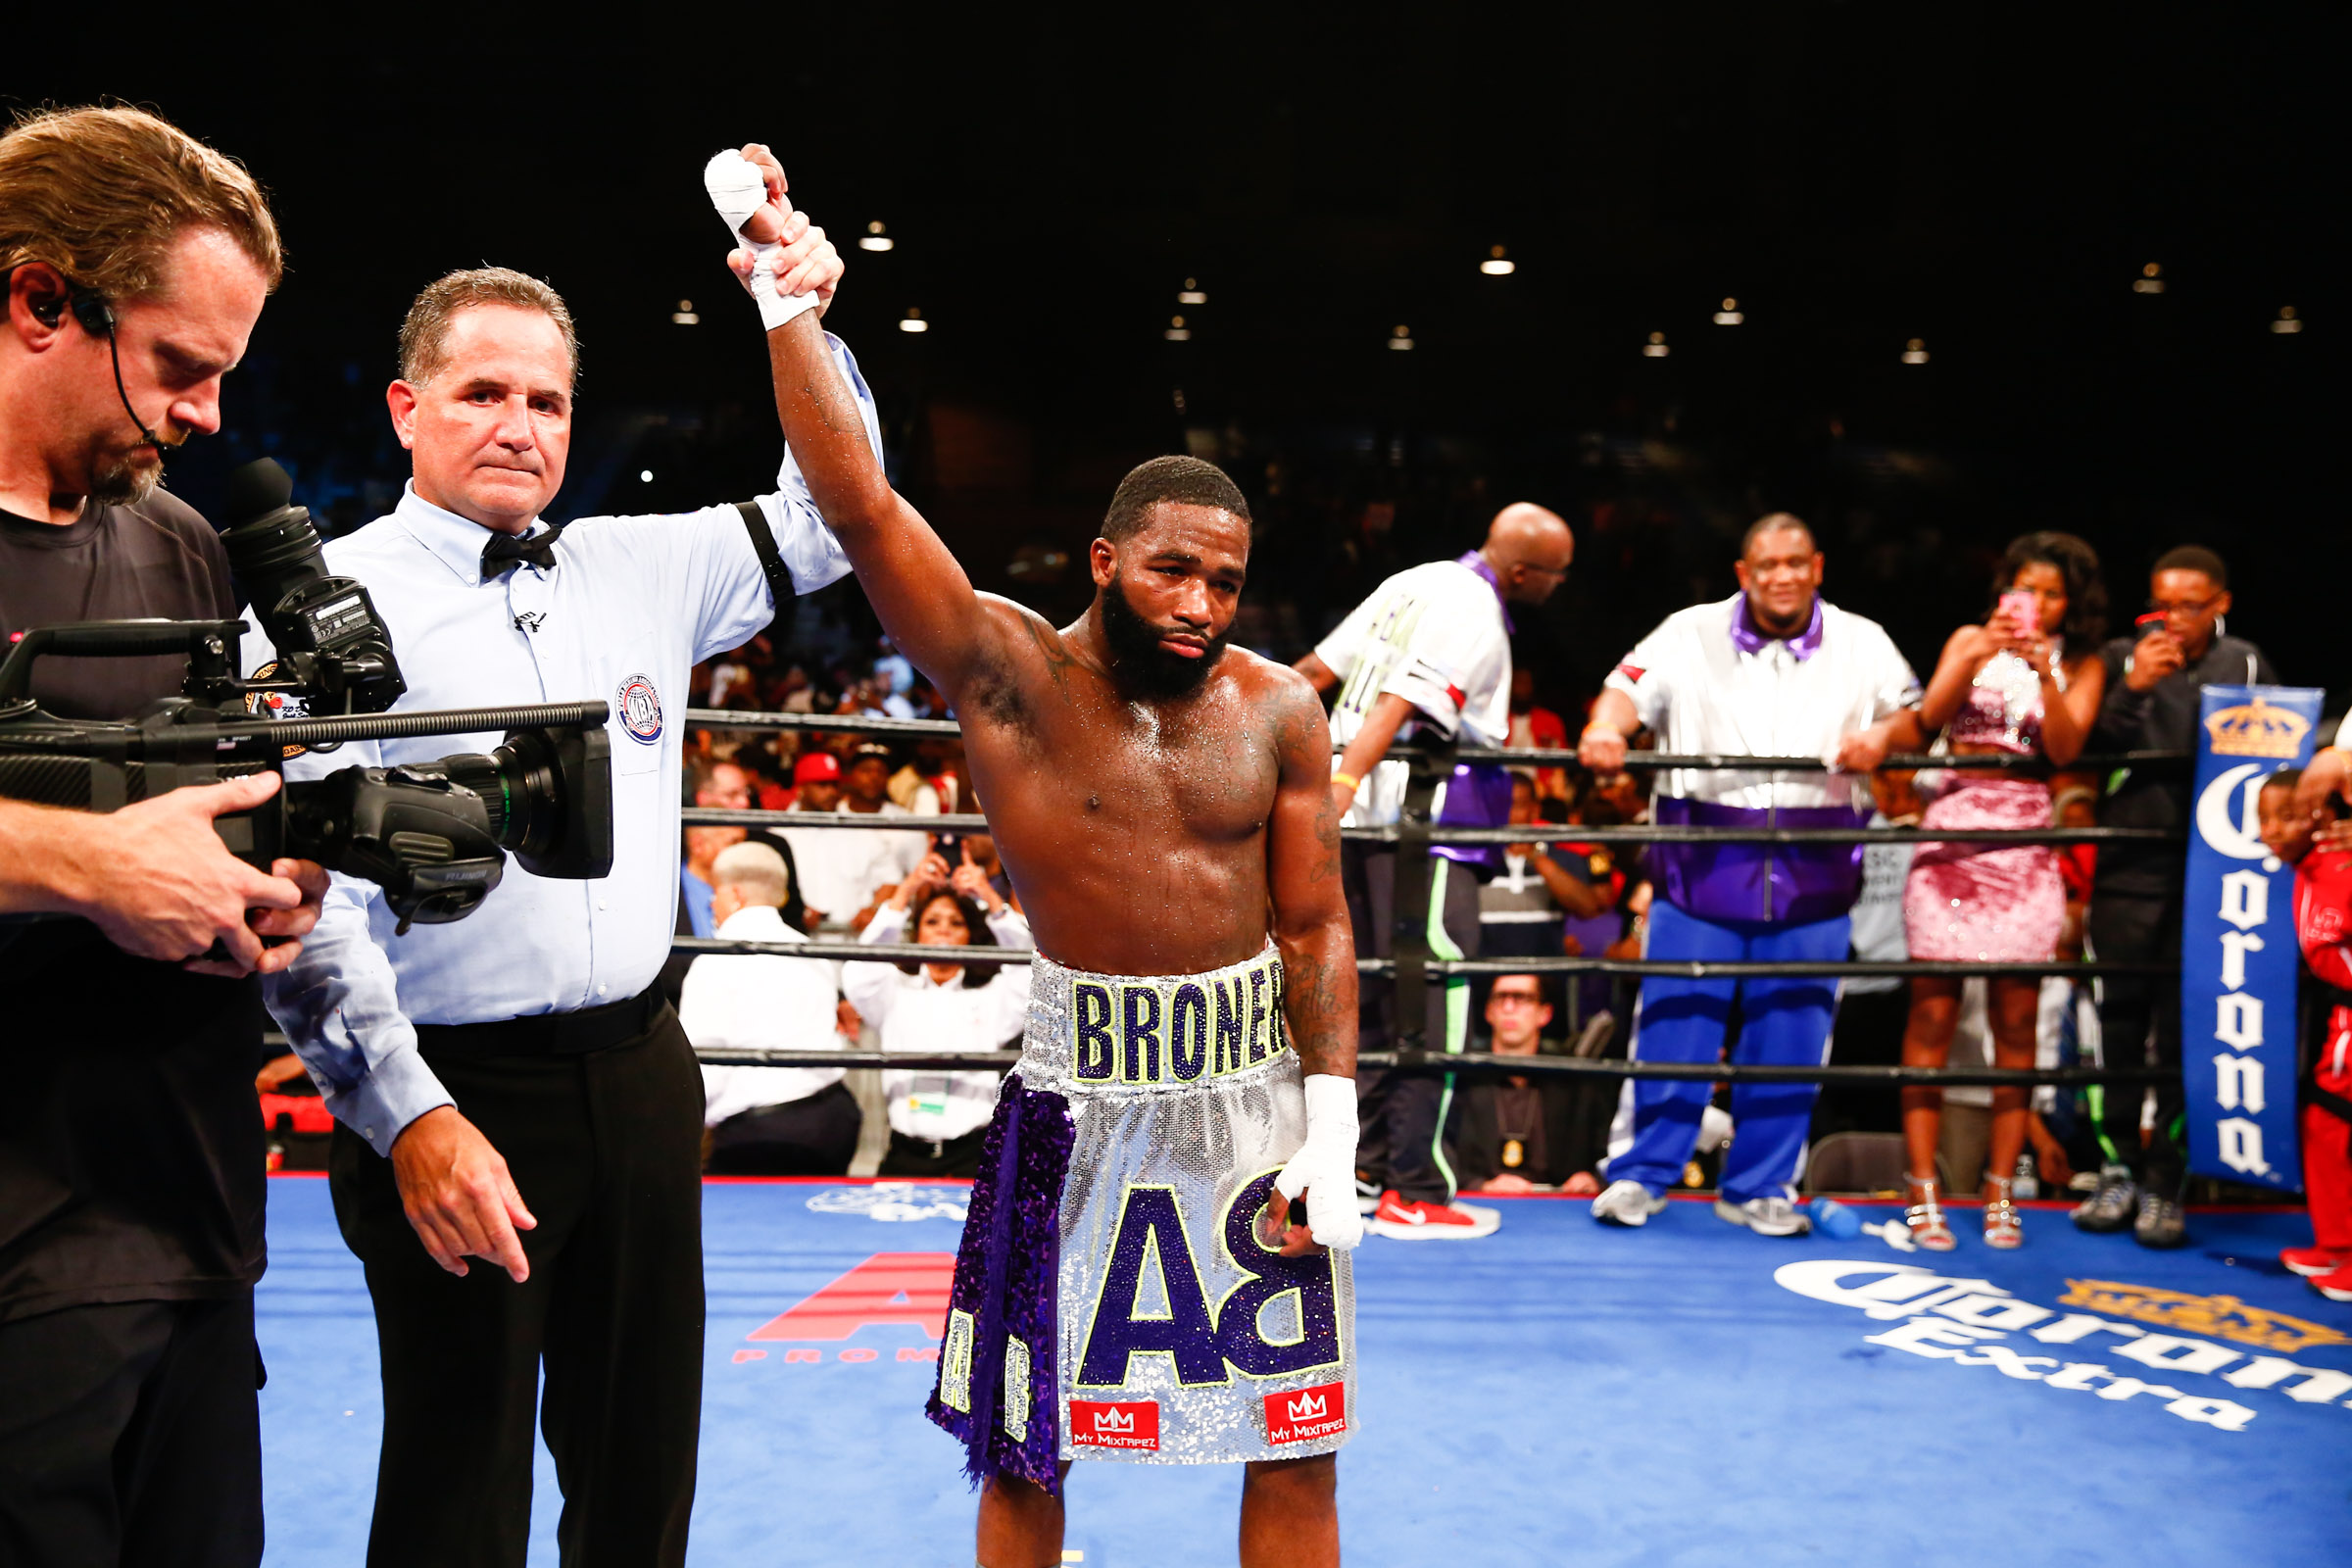 LR_FIGHT NIGHT-BRONER vs THEOPHANE-04012016-8752.jpg